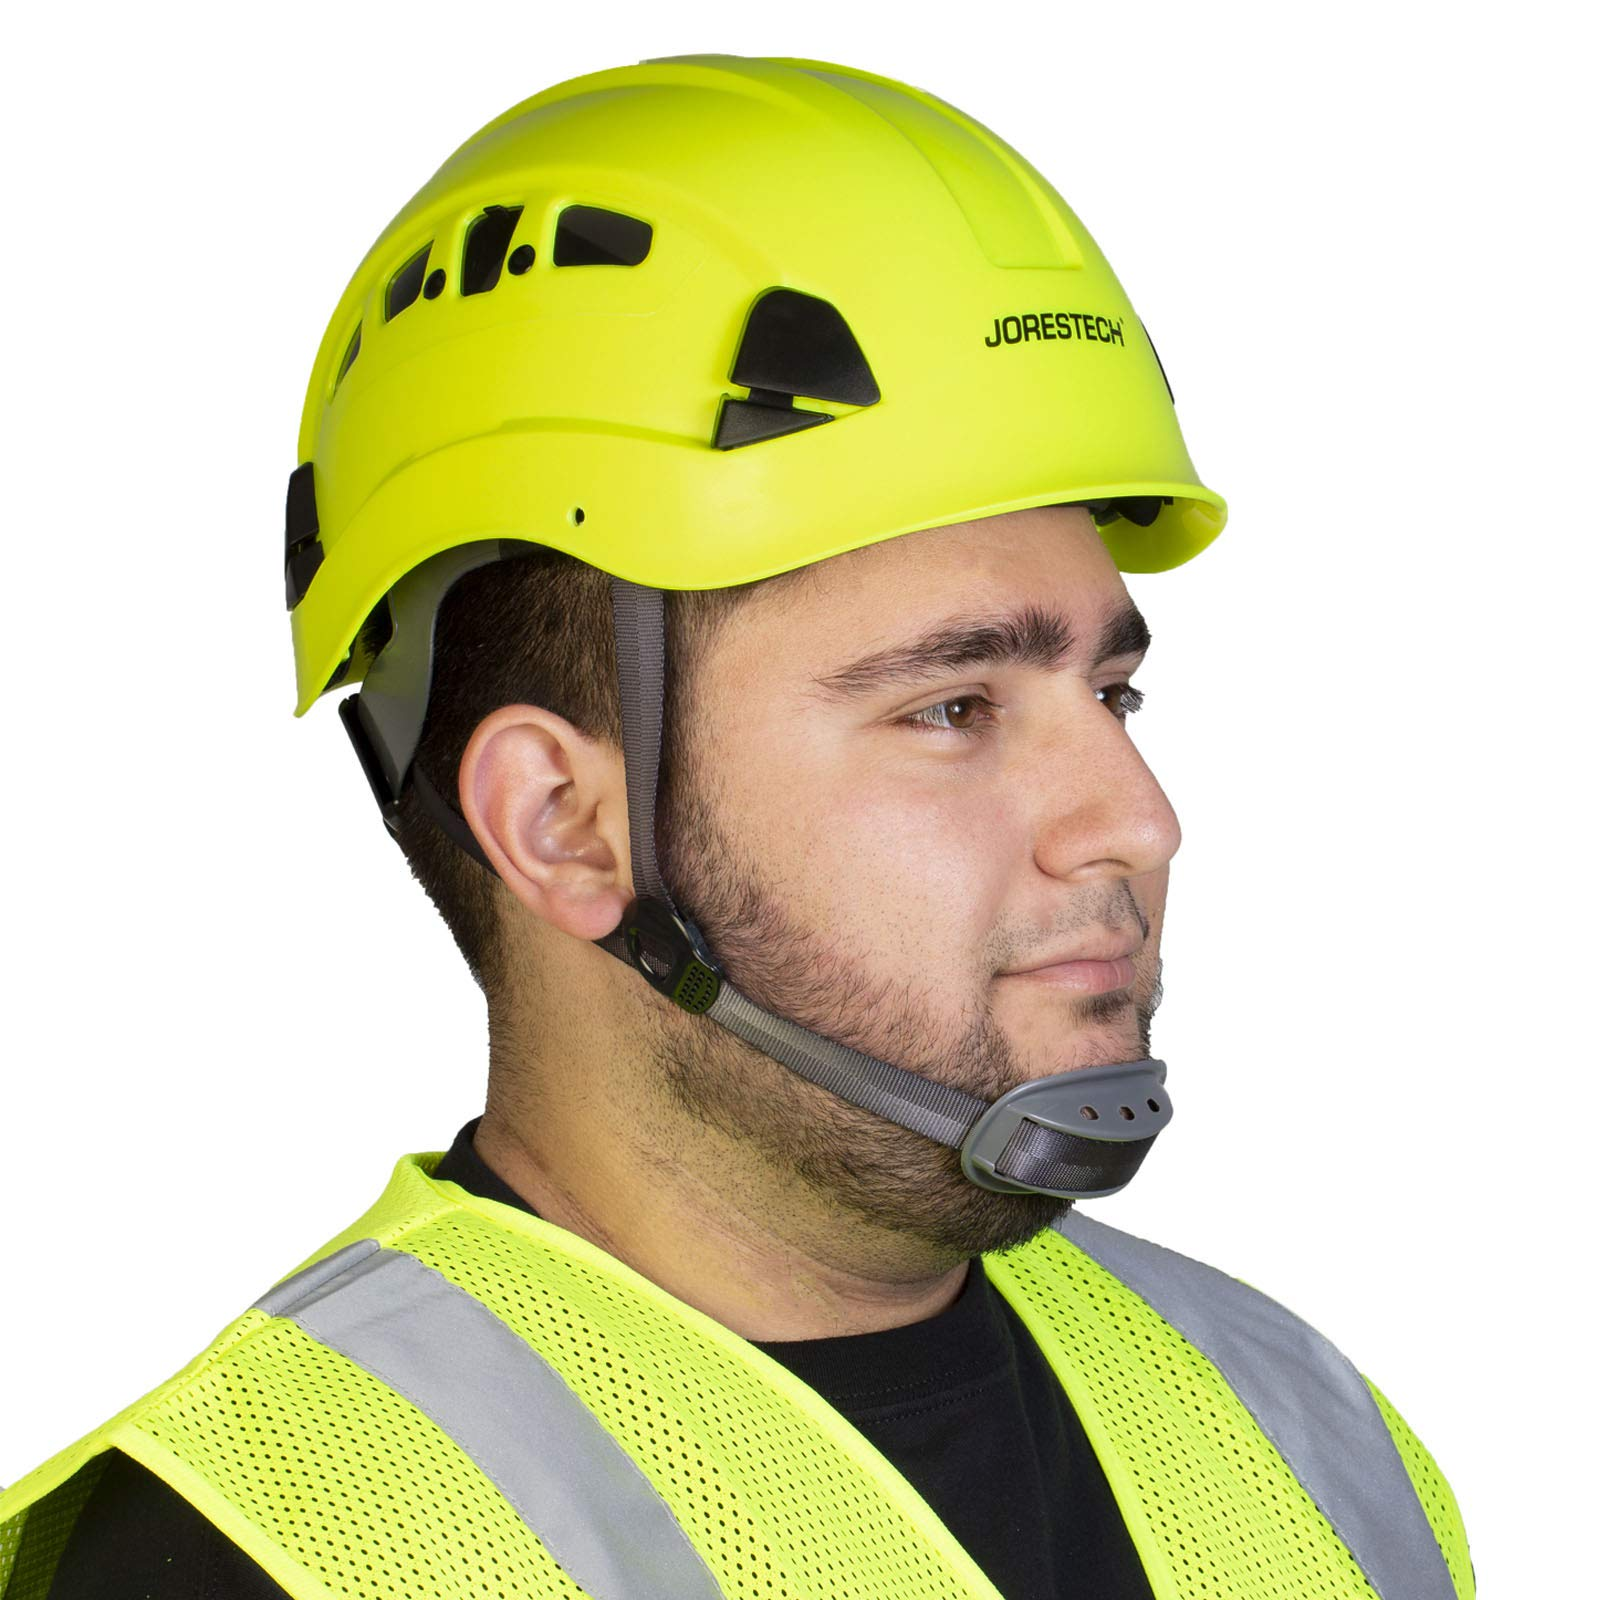 JORESTECH Hard Hat Lime ABS Work-At-Height and Rescue Slotted Ventilated Helmet with 6-Point Ratchet Suspension ANSI Z89.1-14 Certified For Work, Home, and General Headwear Protection HHAT-04 by JORESTECH